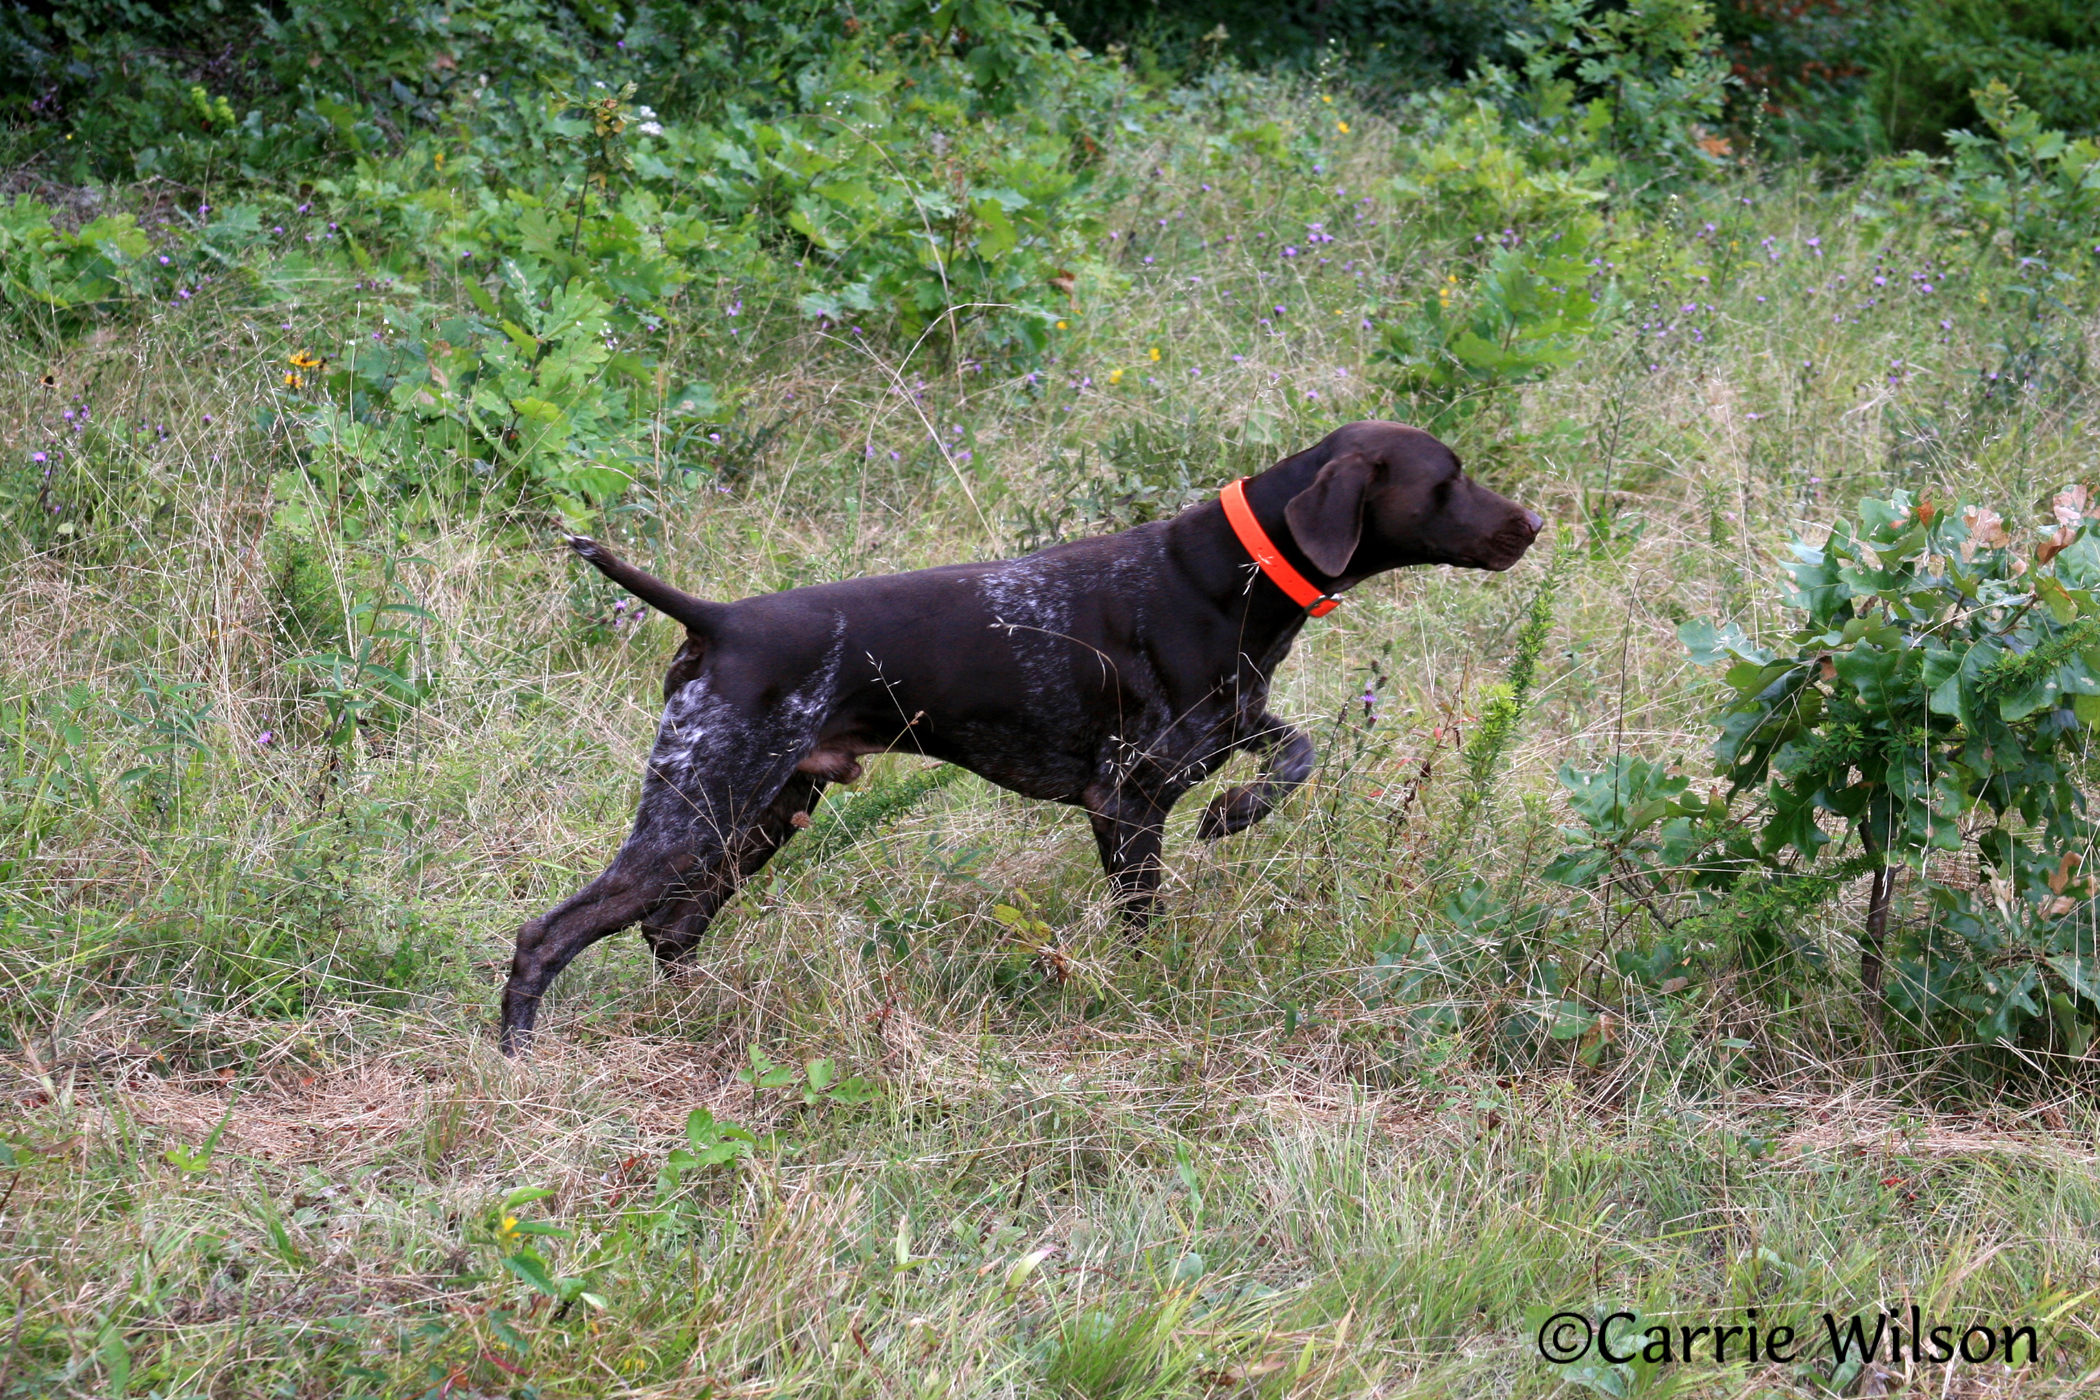 GPS Collars on Dogs While Hunting? | California Outdoors Q ...